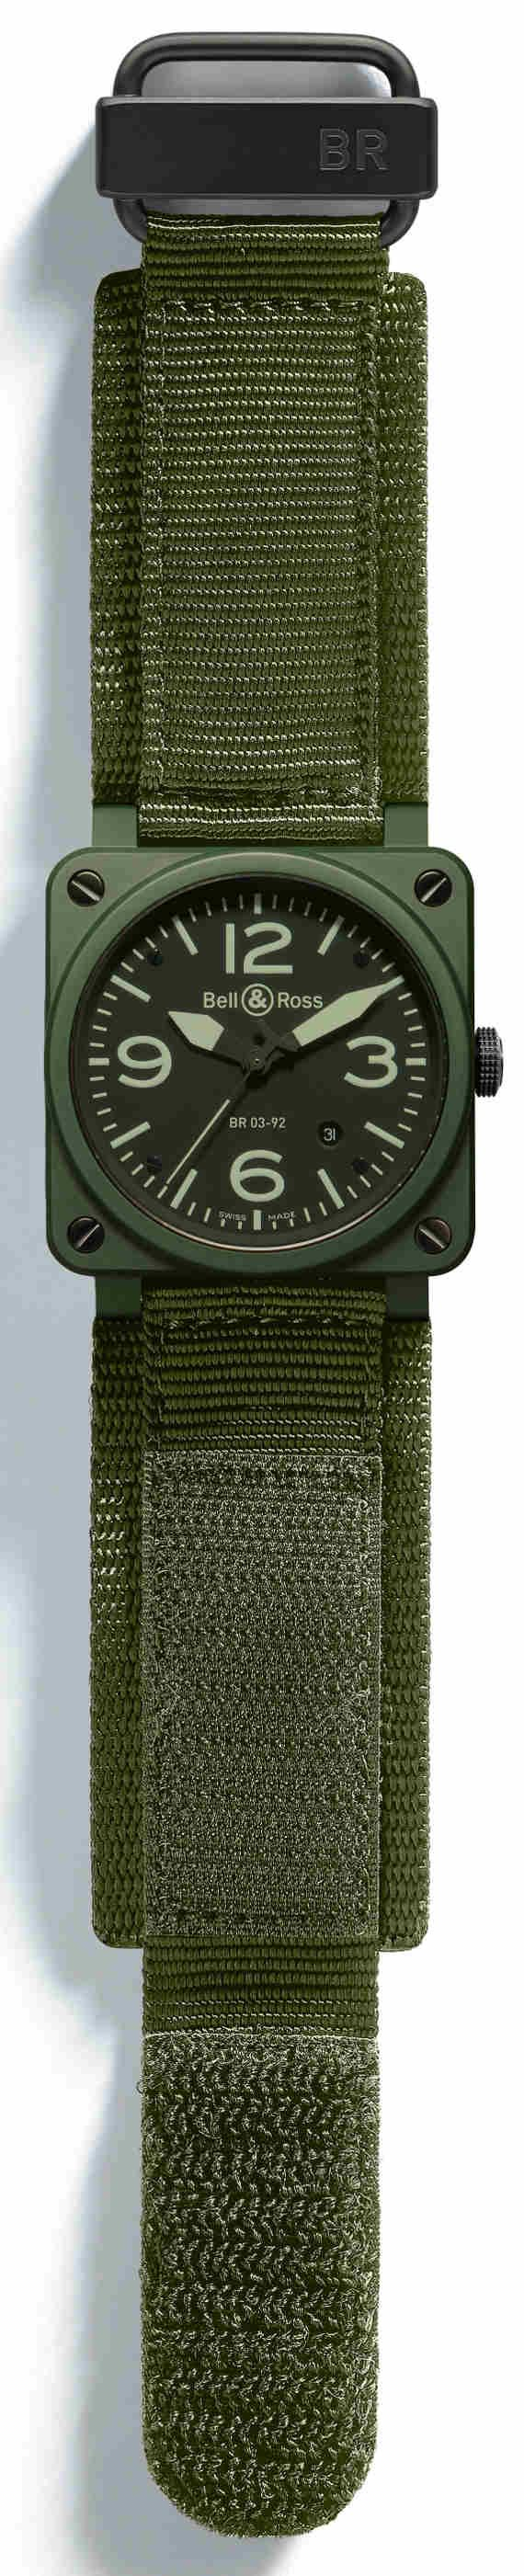 Bell & Ross Instrument BR=£-92 Military Ceramic Watch